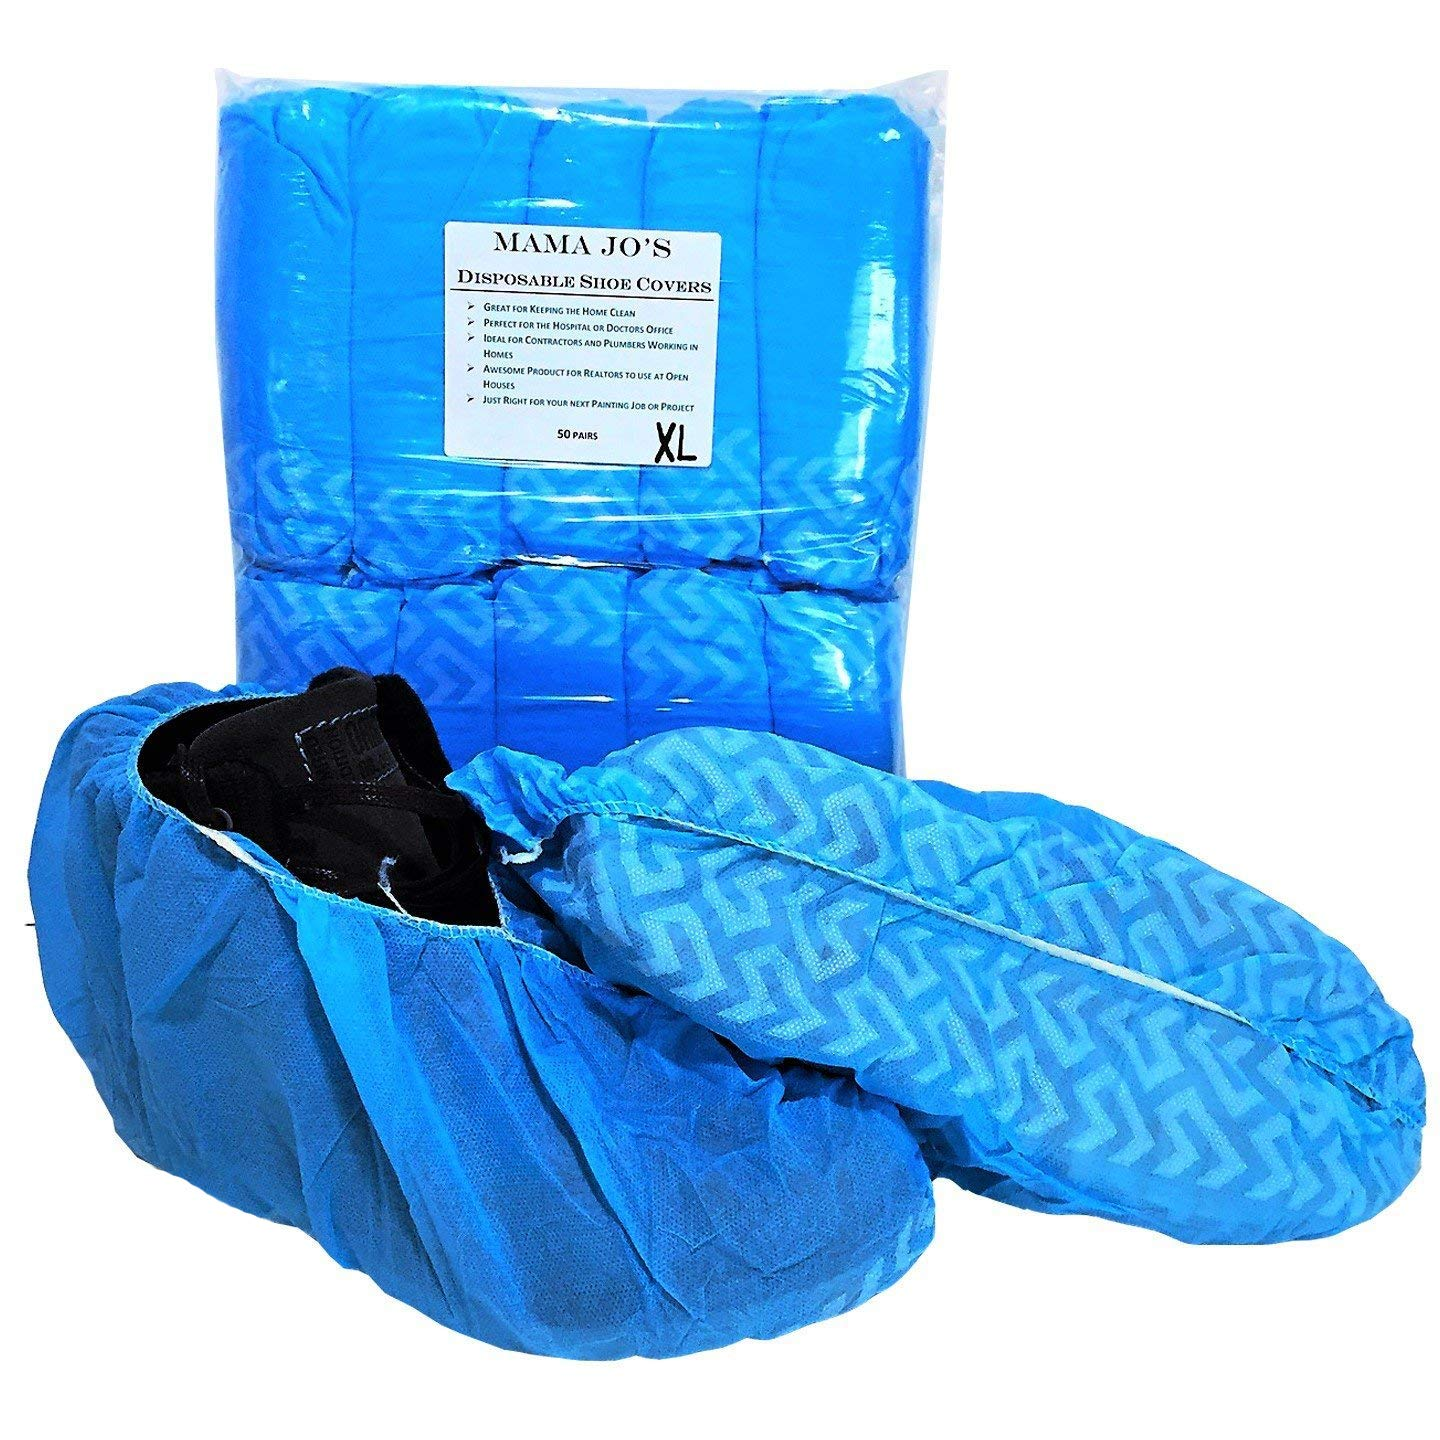 XL Disposable Boot Shoe Covers - Fits All Shoe Sizes From Size 5 to 15 - Made for Extra Large Wide Shoes and Work Boots - 100 Booties Per Pack by Mama Jo's Products